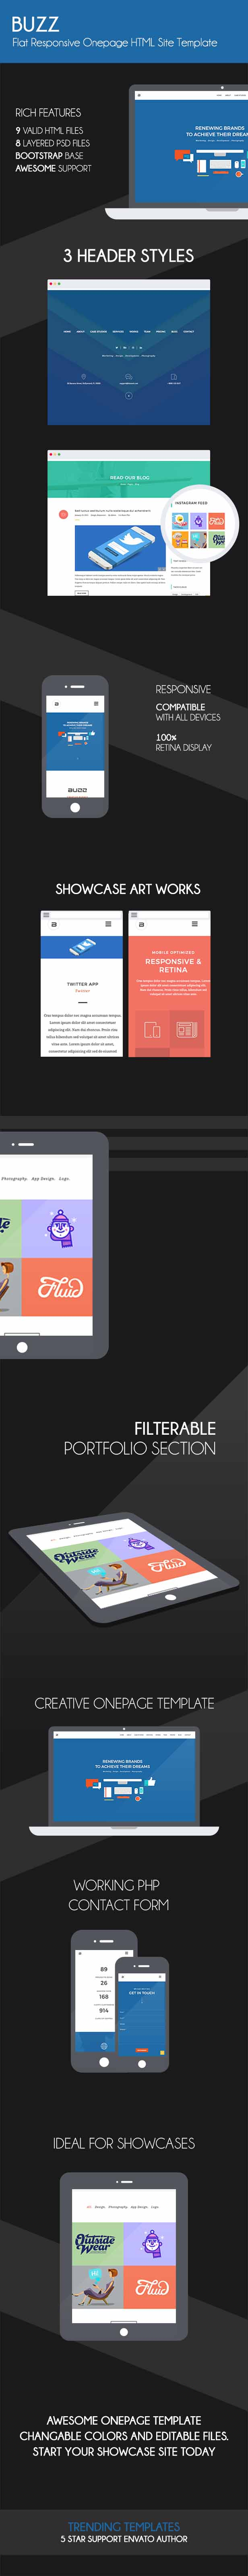 Buzz - Flat Responsive Onepage HTML Site Template